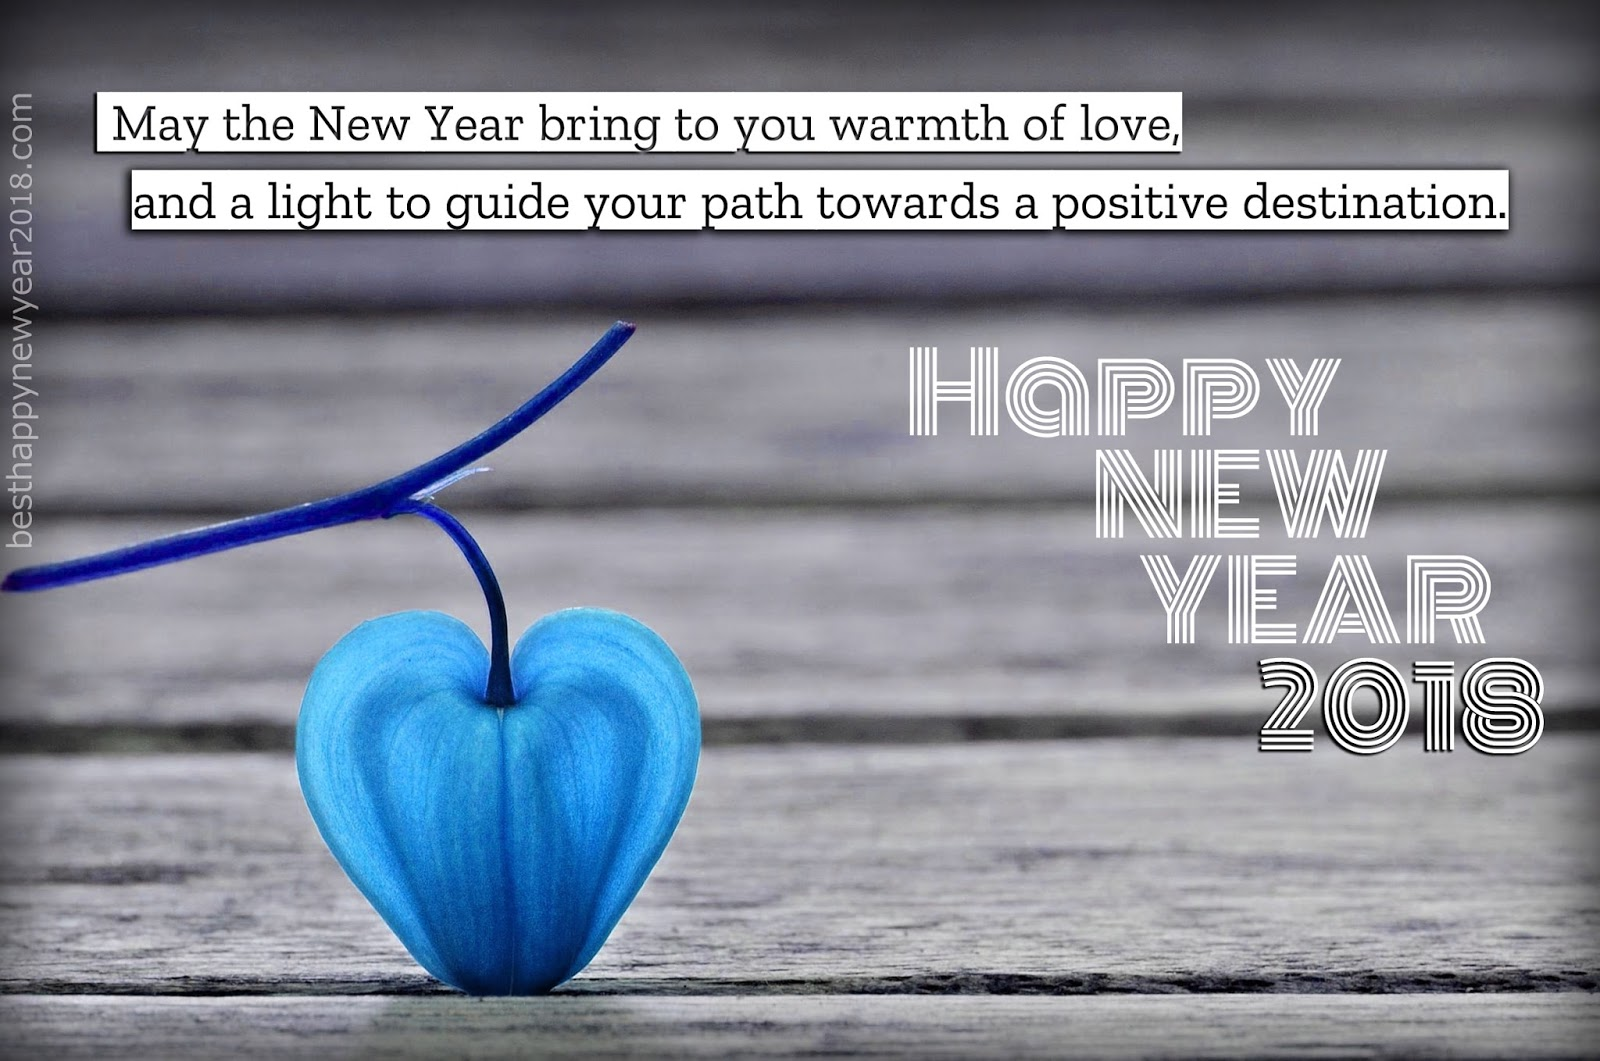 Happy new year 2018 greetings messages quotes for friends family 20182bnew2byear2bsayings kristyandbryce Gallery